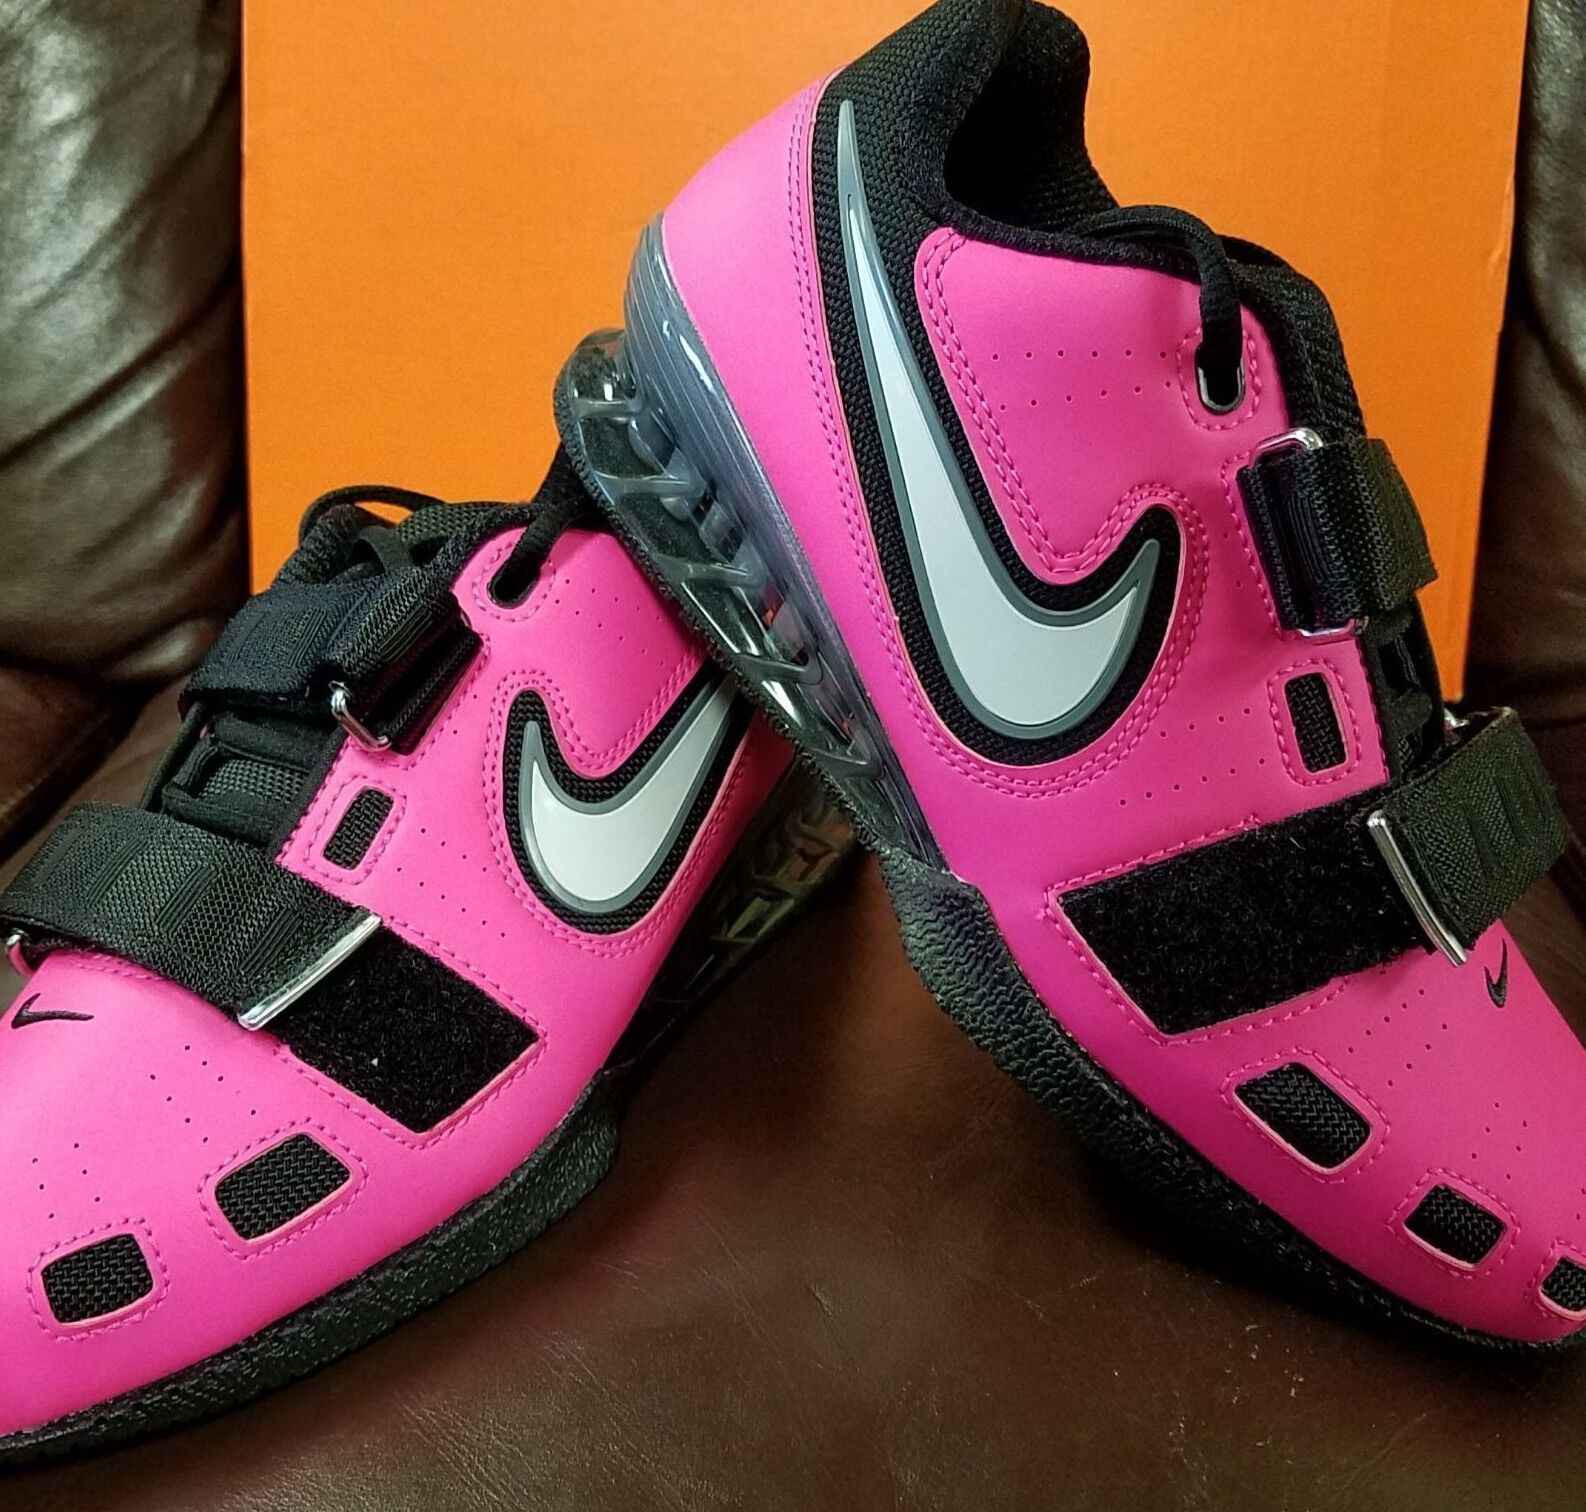 BRAND NEW IN BOX  NIKE ROMALEOS 2 MENS WEIGHTLIFTING SHOES PINK BLACK UNISEX 601